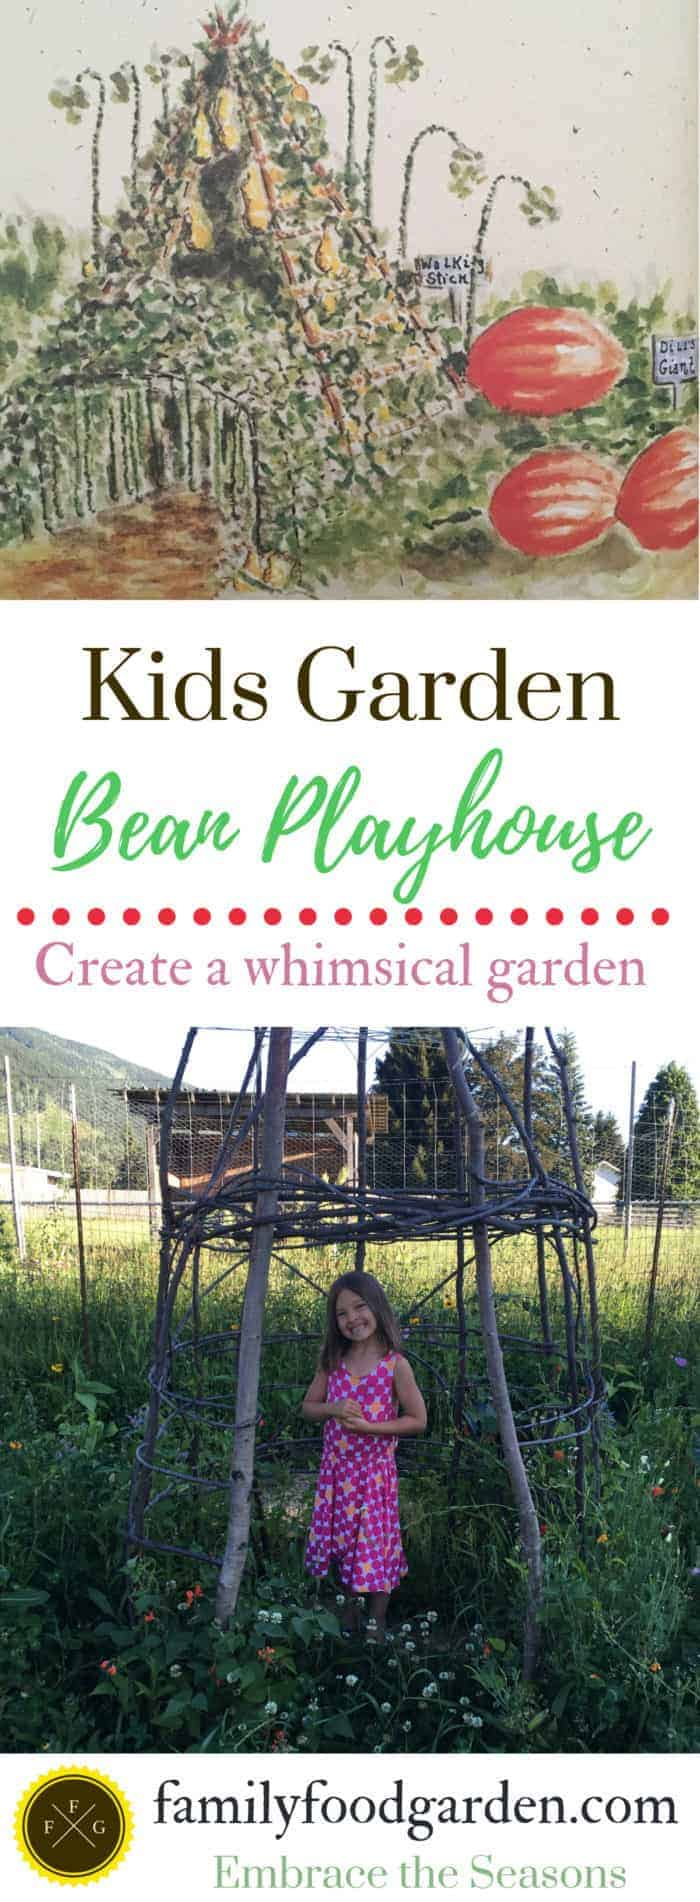 Kids garden bean playhouse